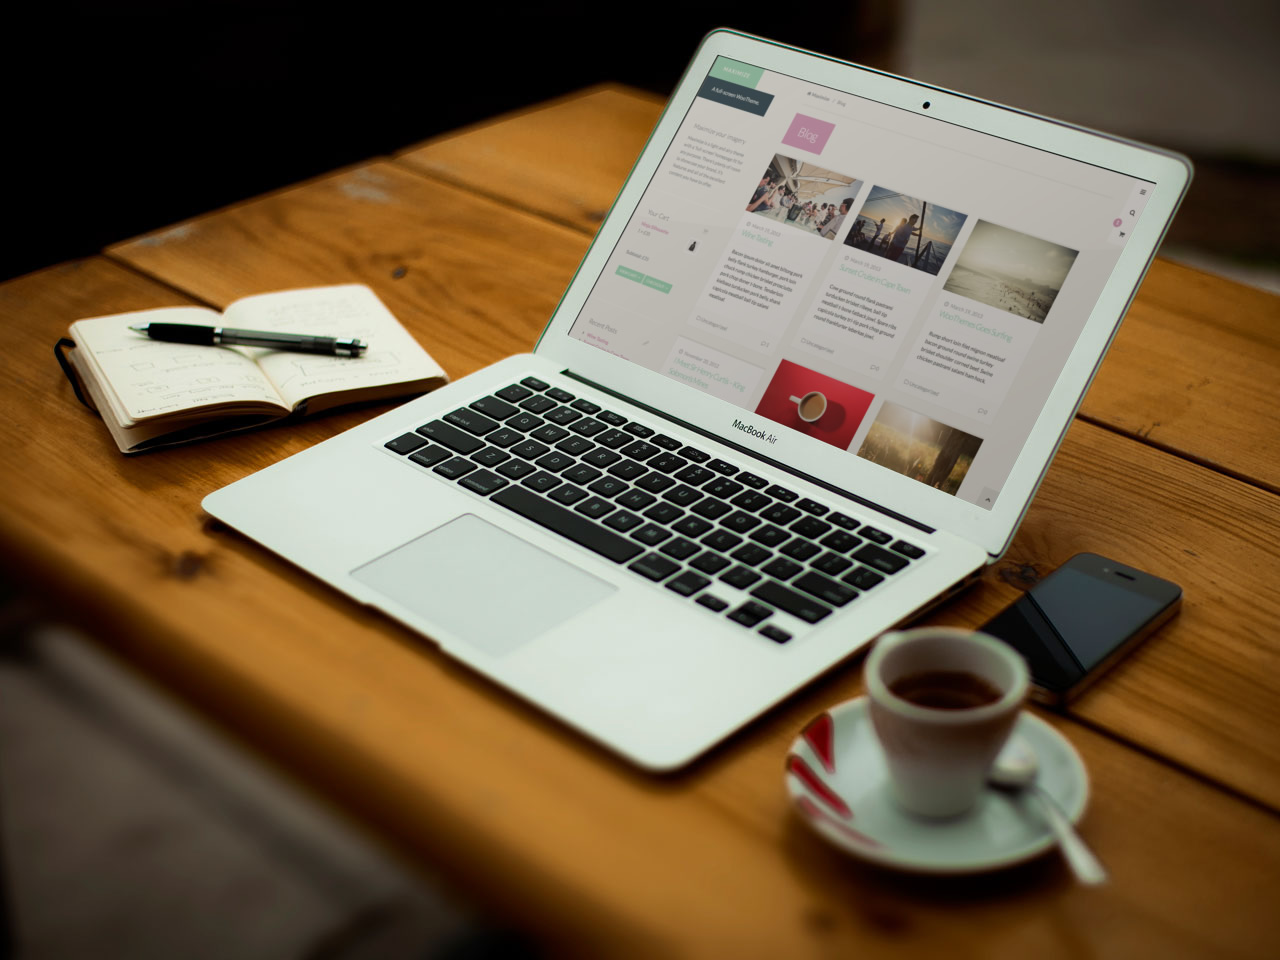 Powerful Reasons for Using Great Images in Blog Posts